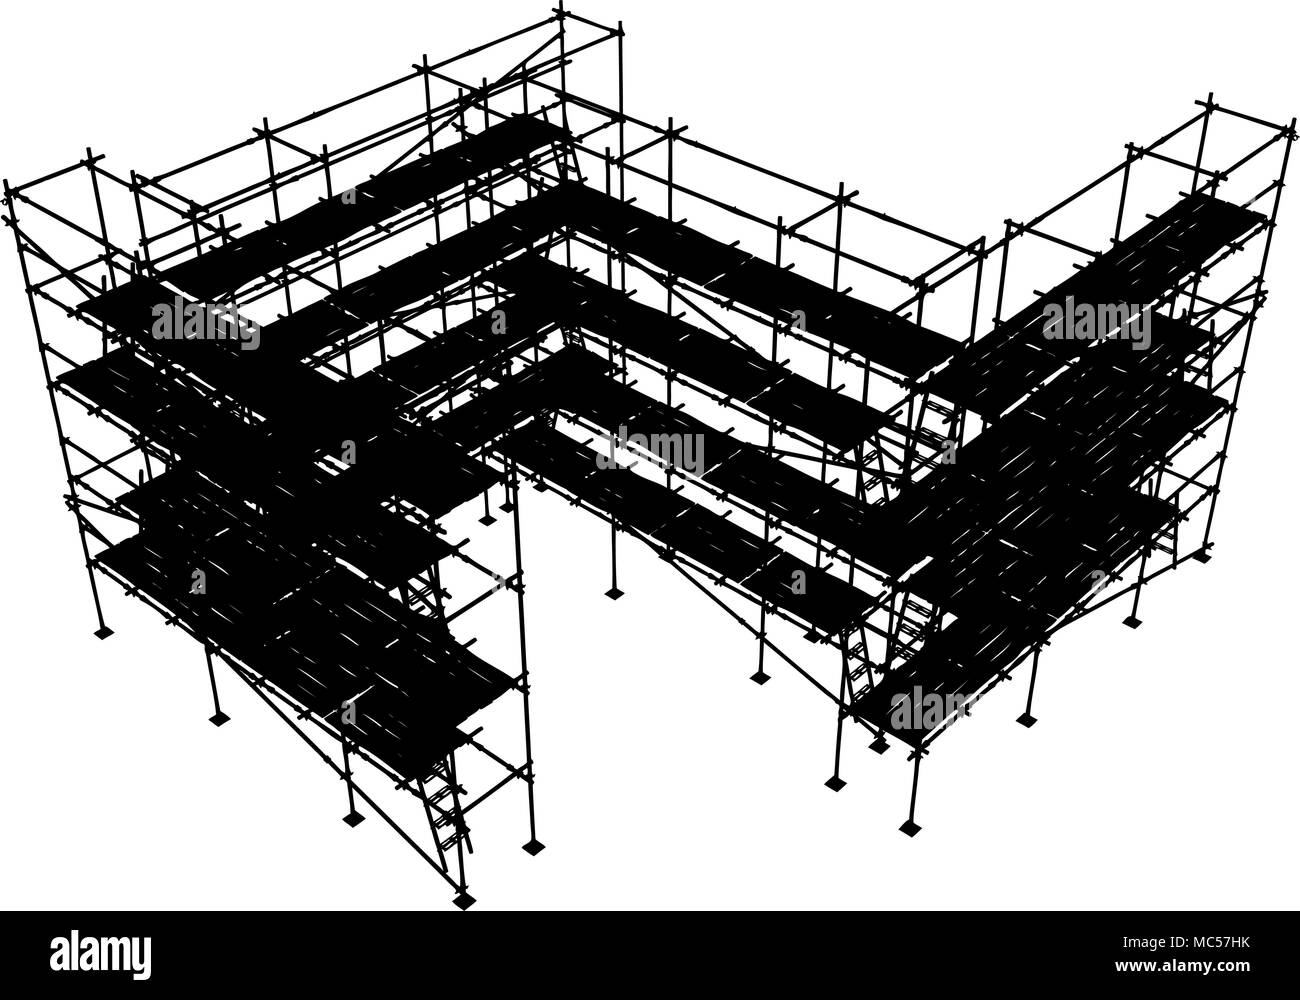 Horizontal construction scaffolding structure vector silhouette, isolated - Stock Vector